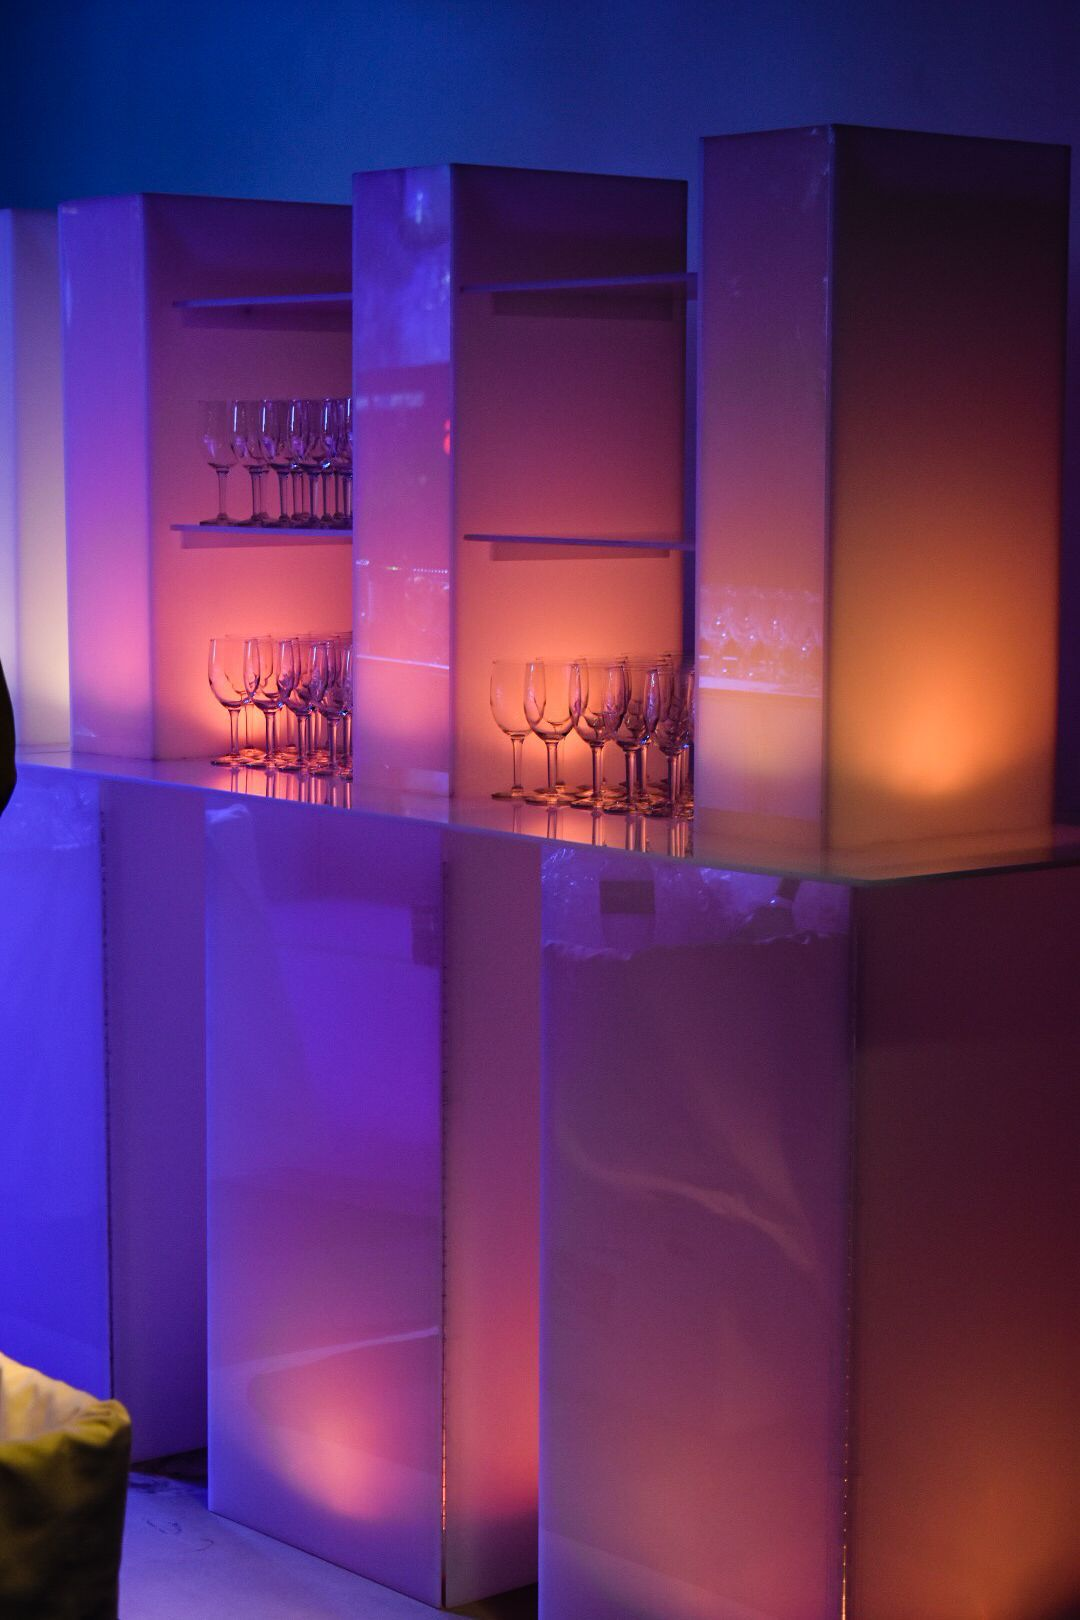 Our New Led Back Bars Have Been A Hit Add A Little Color To Your Next Bar Set Up Eventrentals Furniturerentals Lighti Bar Set Up Led Lights Led